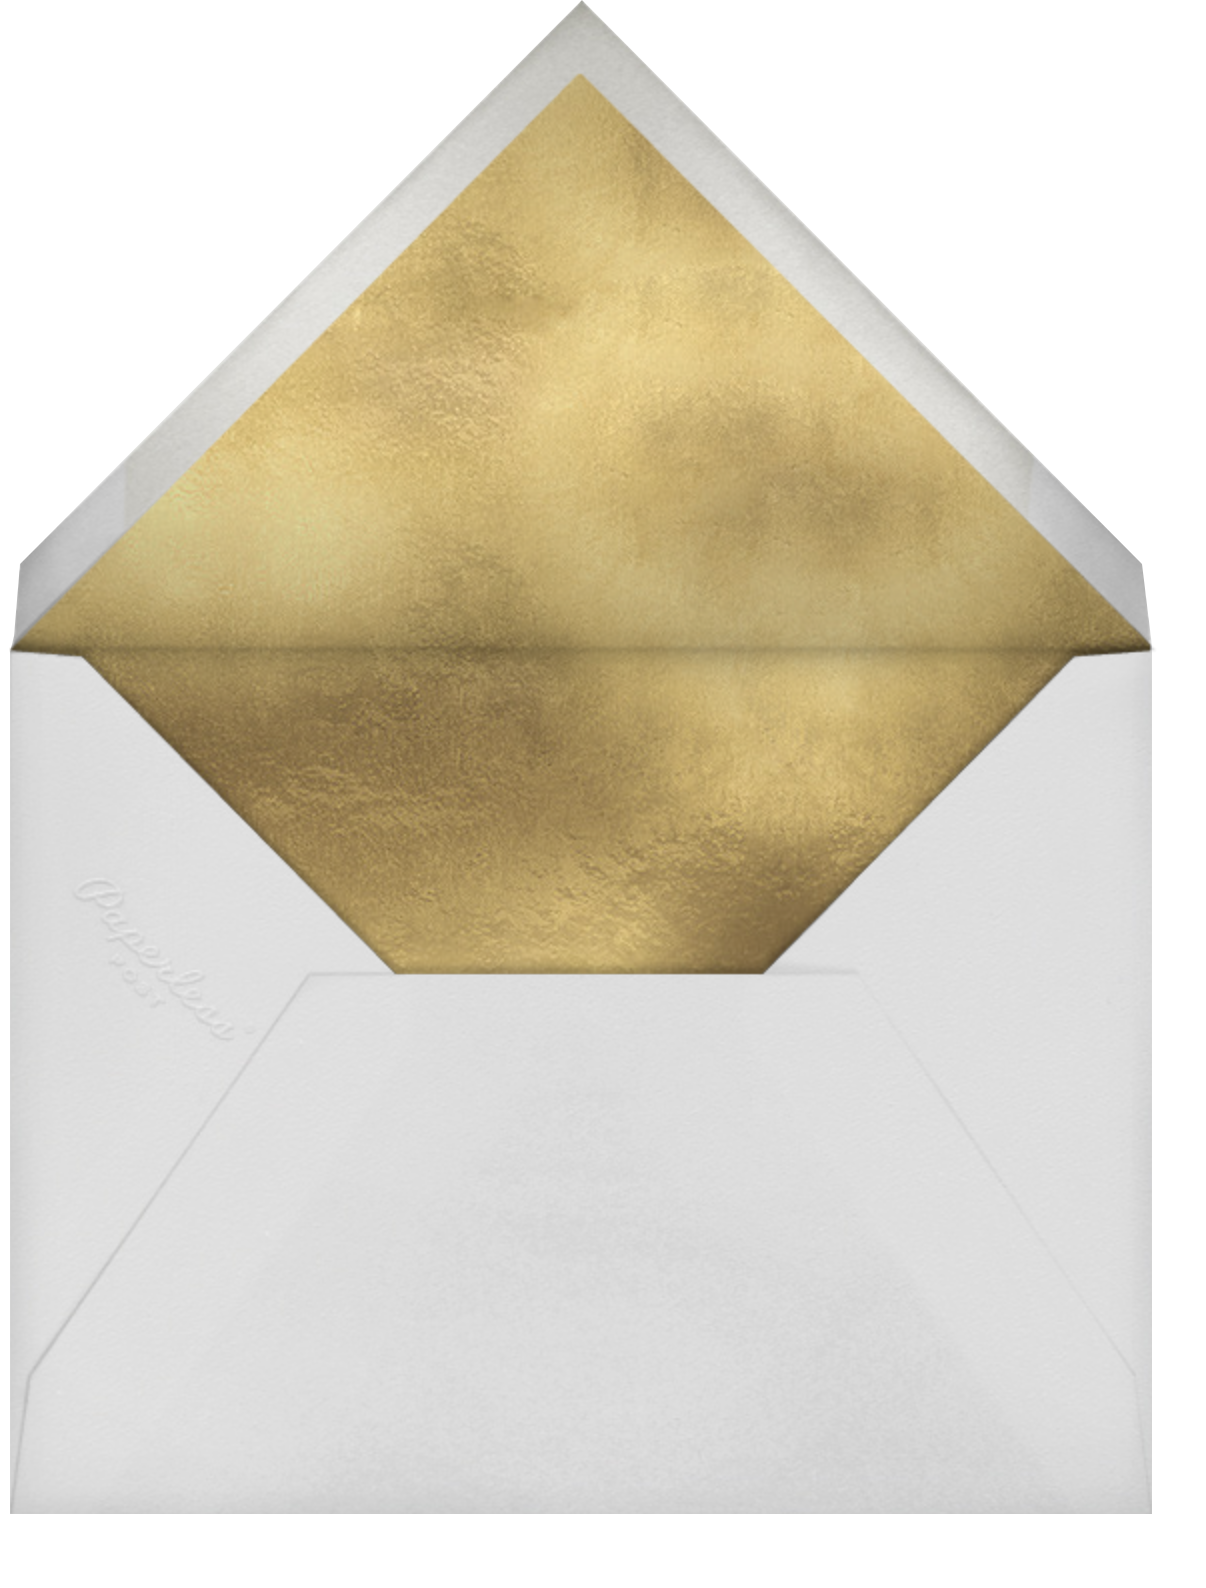 Poppy New Year 2020 Photo - Rifle Paper Co. - New Year - envelope back